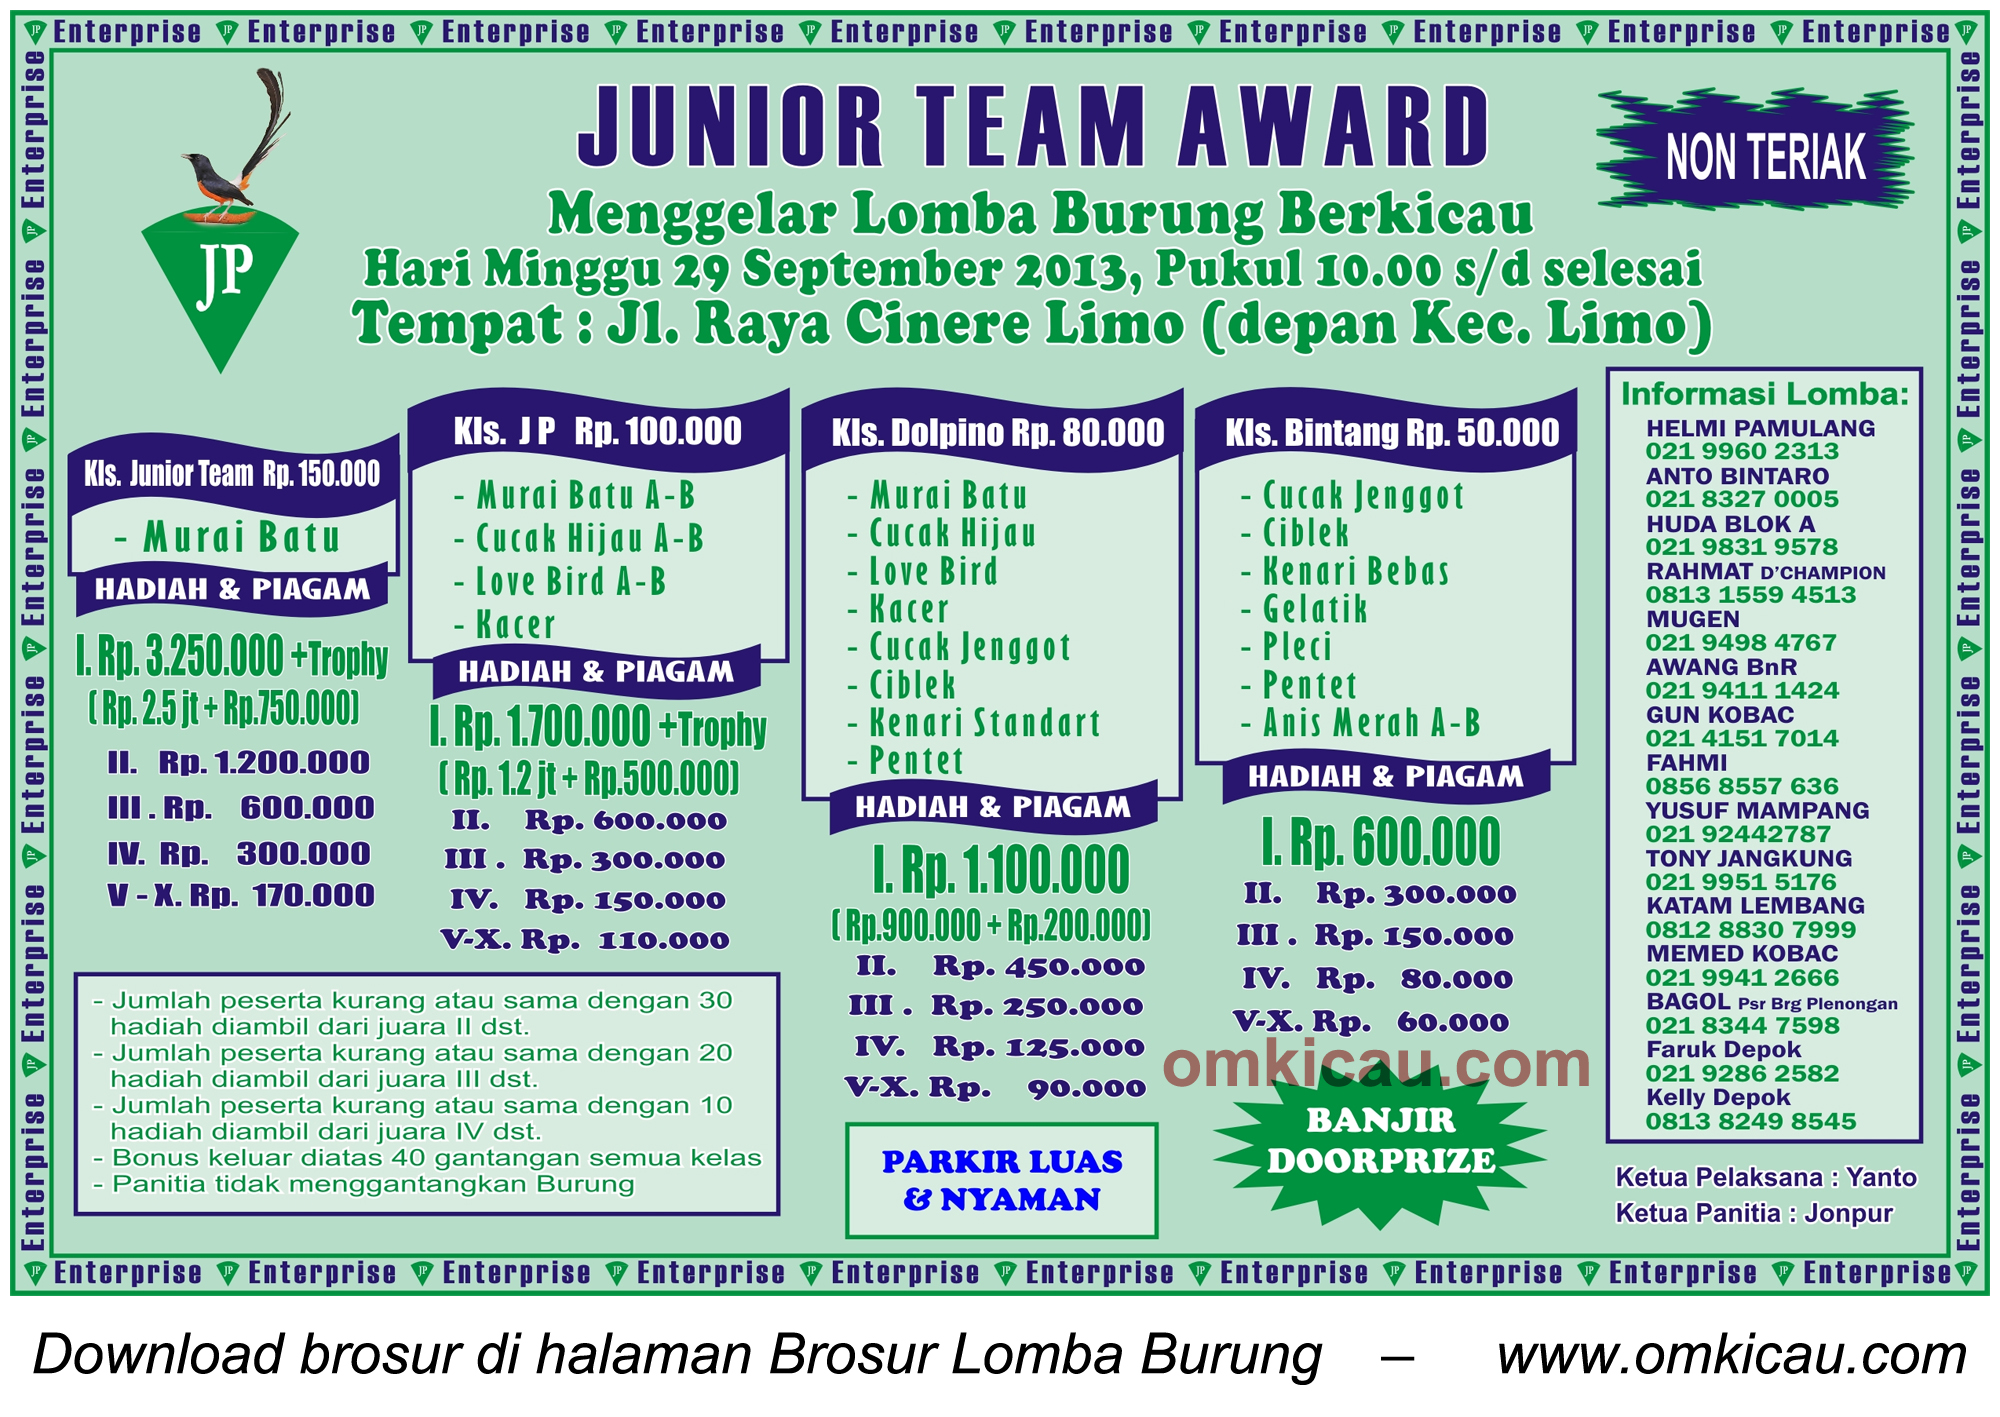 Brosur Lomba Burung Junior Team Award - Depok - 29 Sept 2013